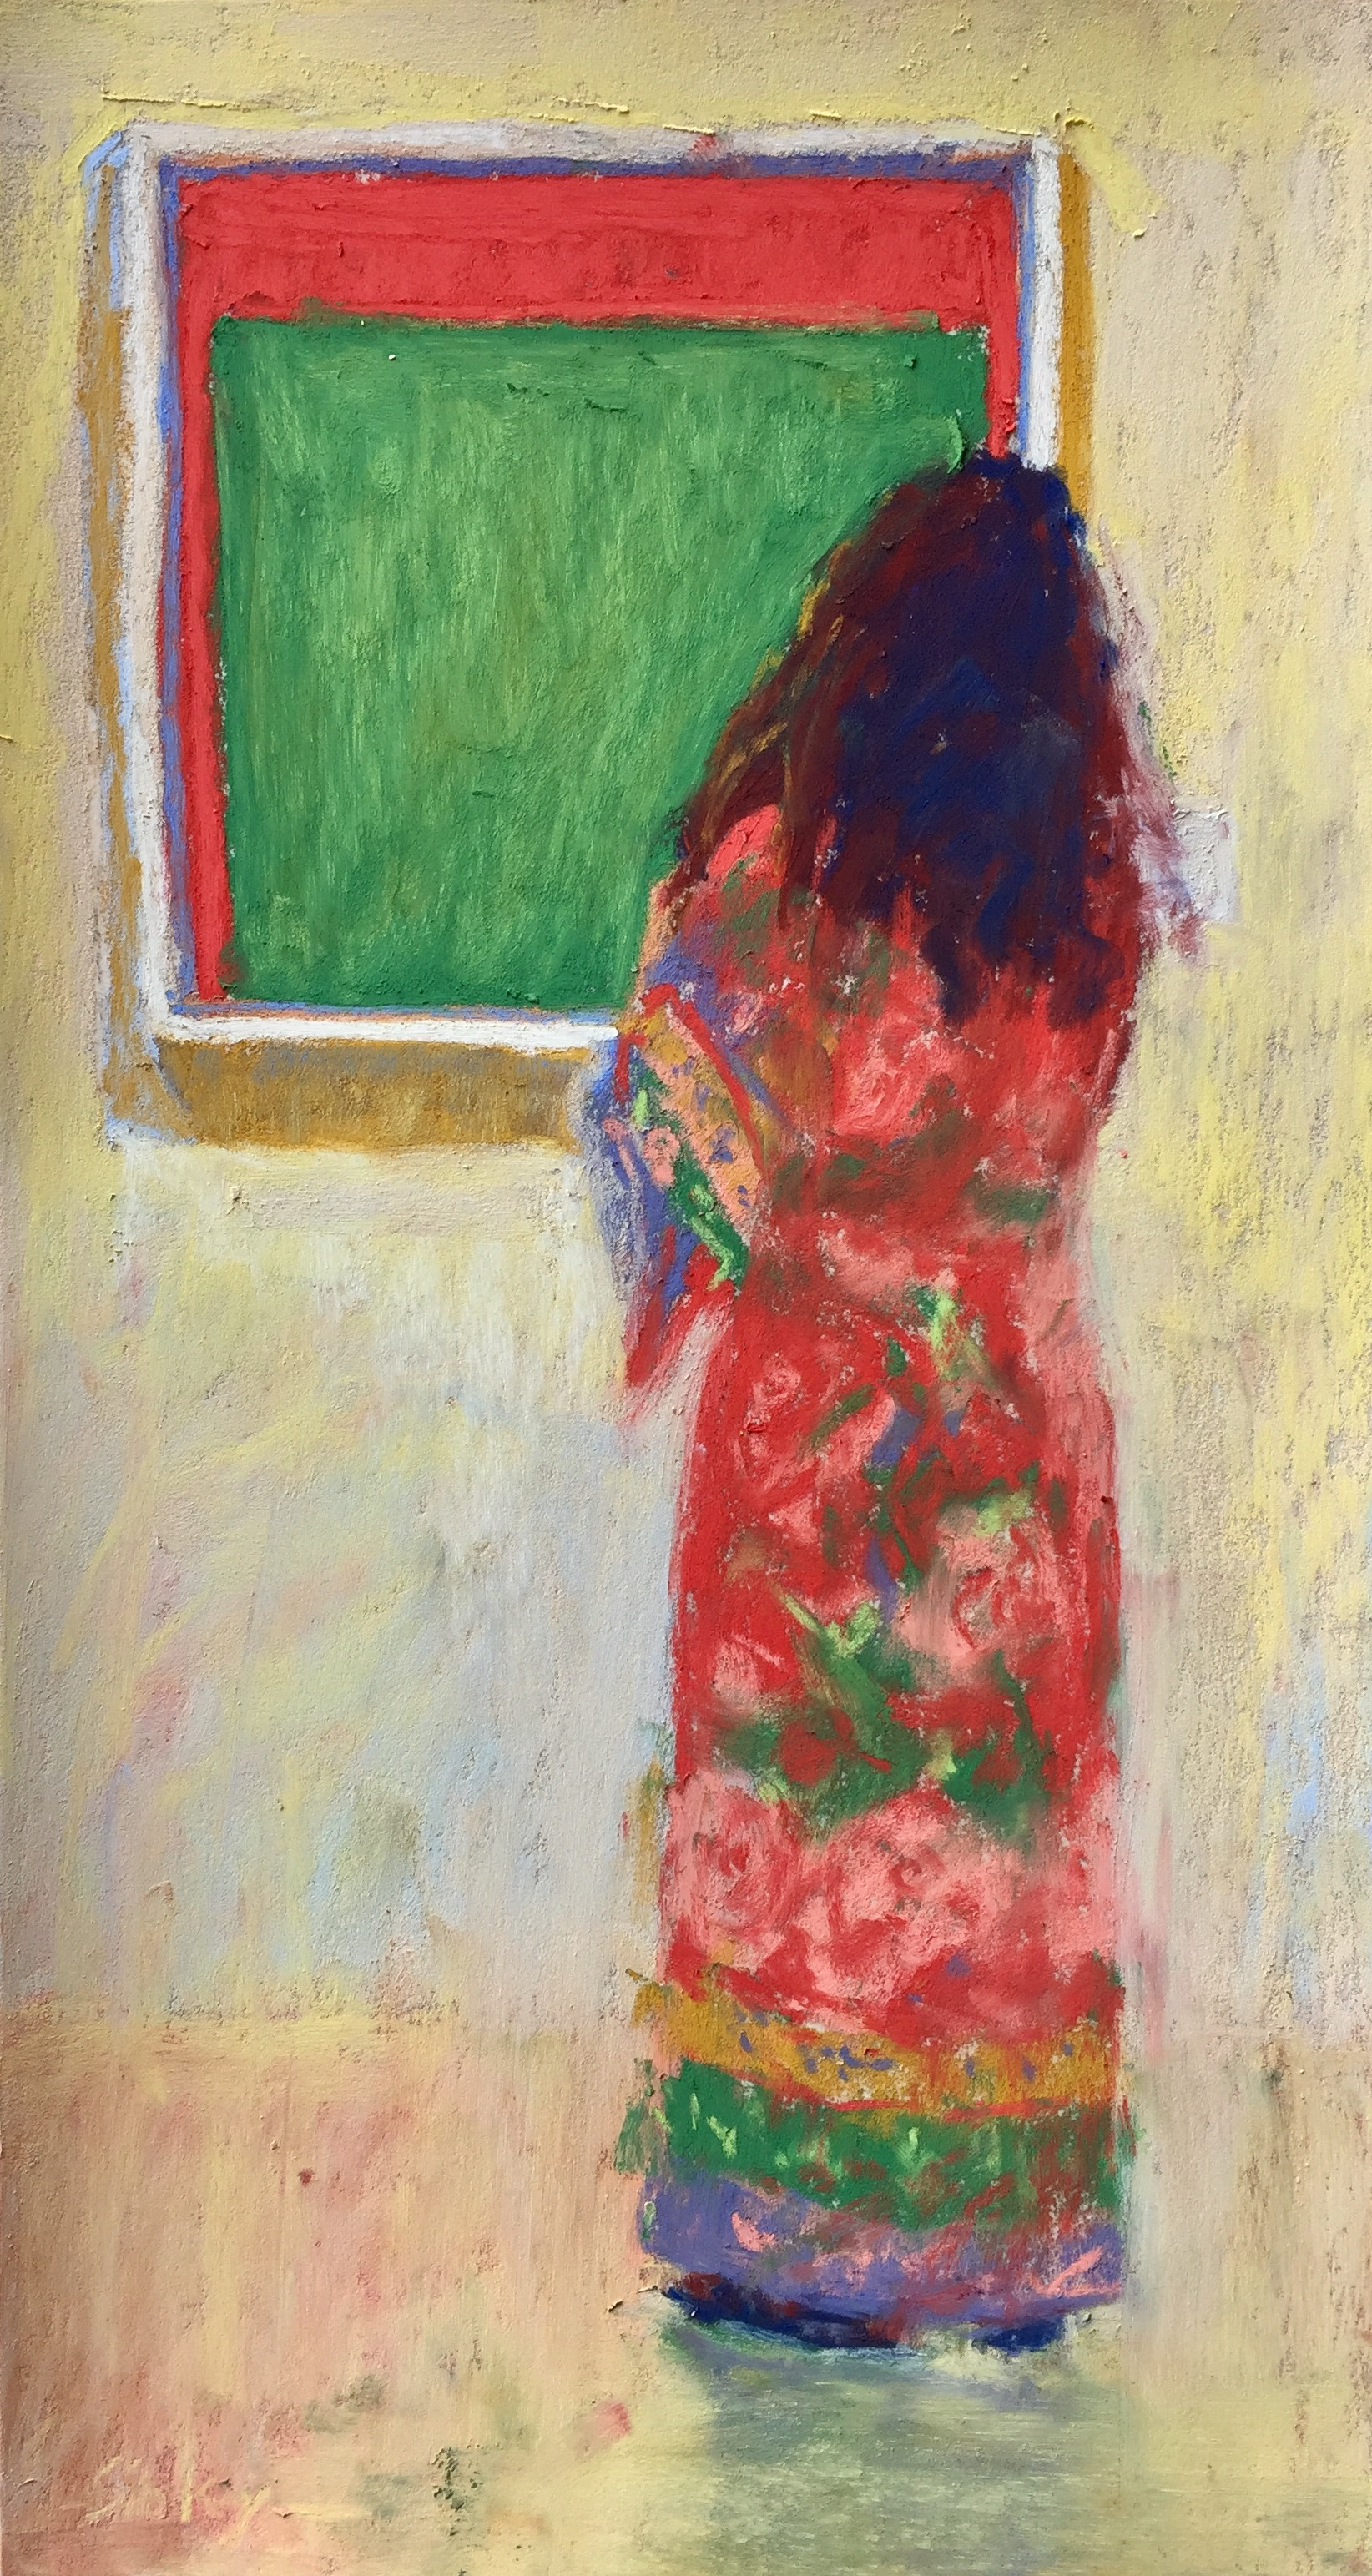 """Doing the Work: Day 20 - """"Green Red Duo,"""" Unison pastels (from 36-set) on UART 500, 12 x 6 1/2 in."""